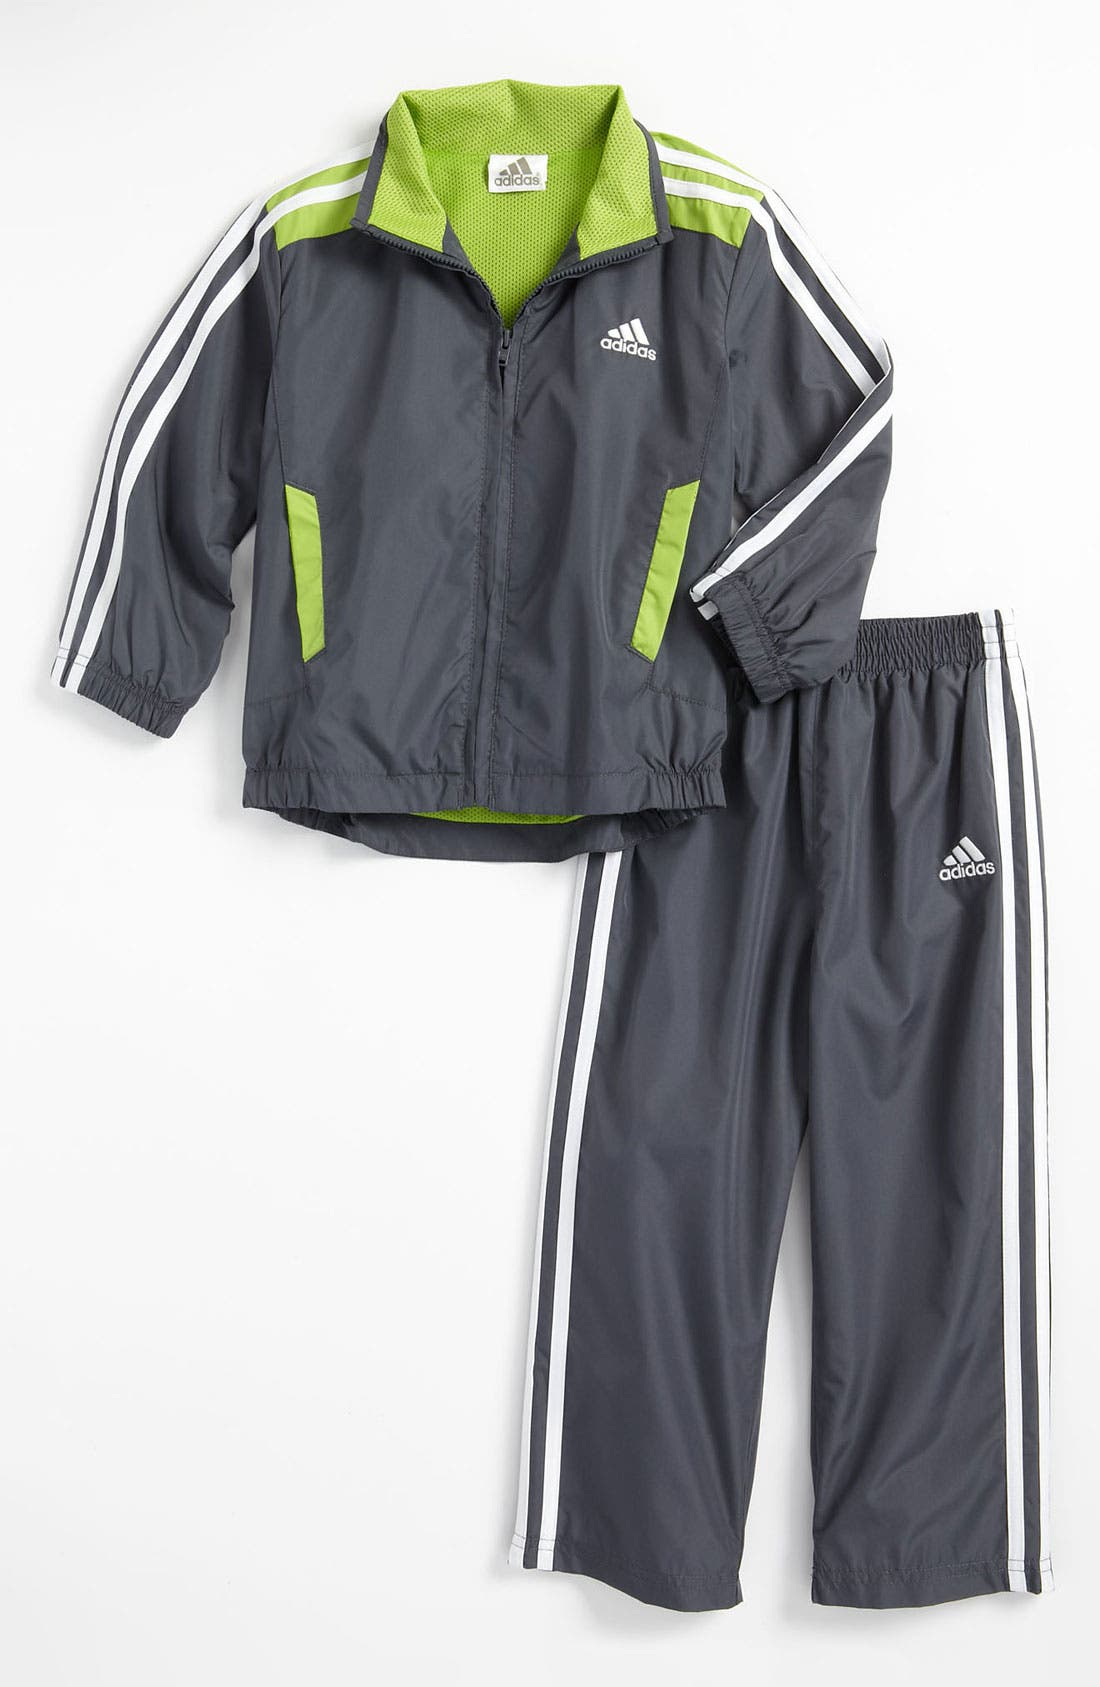 Main Image - adidas 'Essential Q15' Jacket & Pants (Toddler)